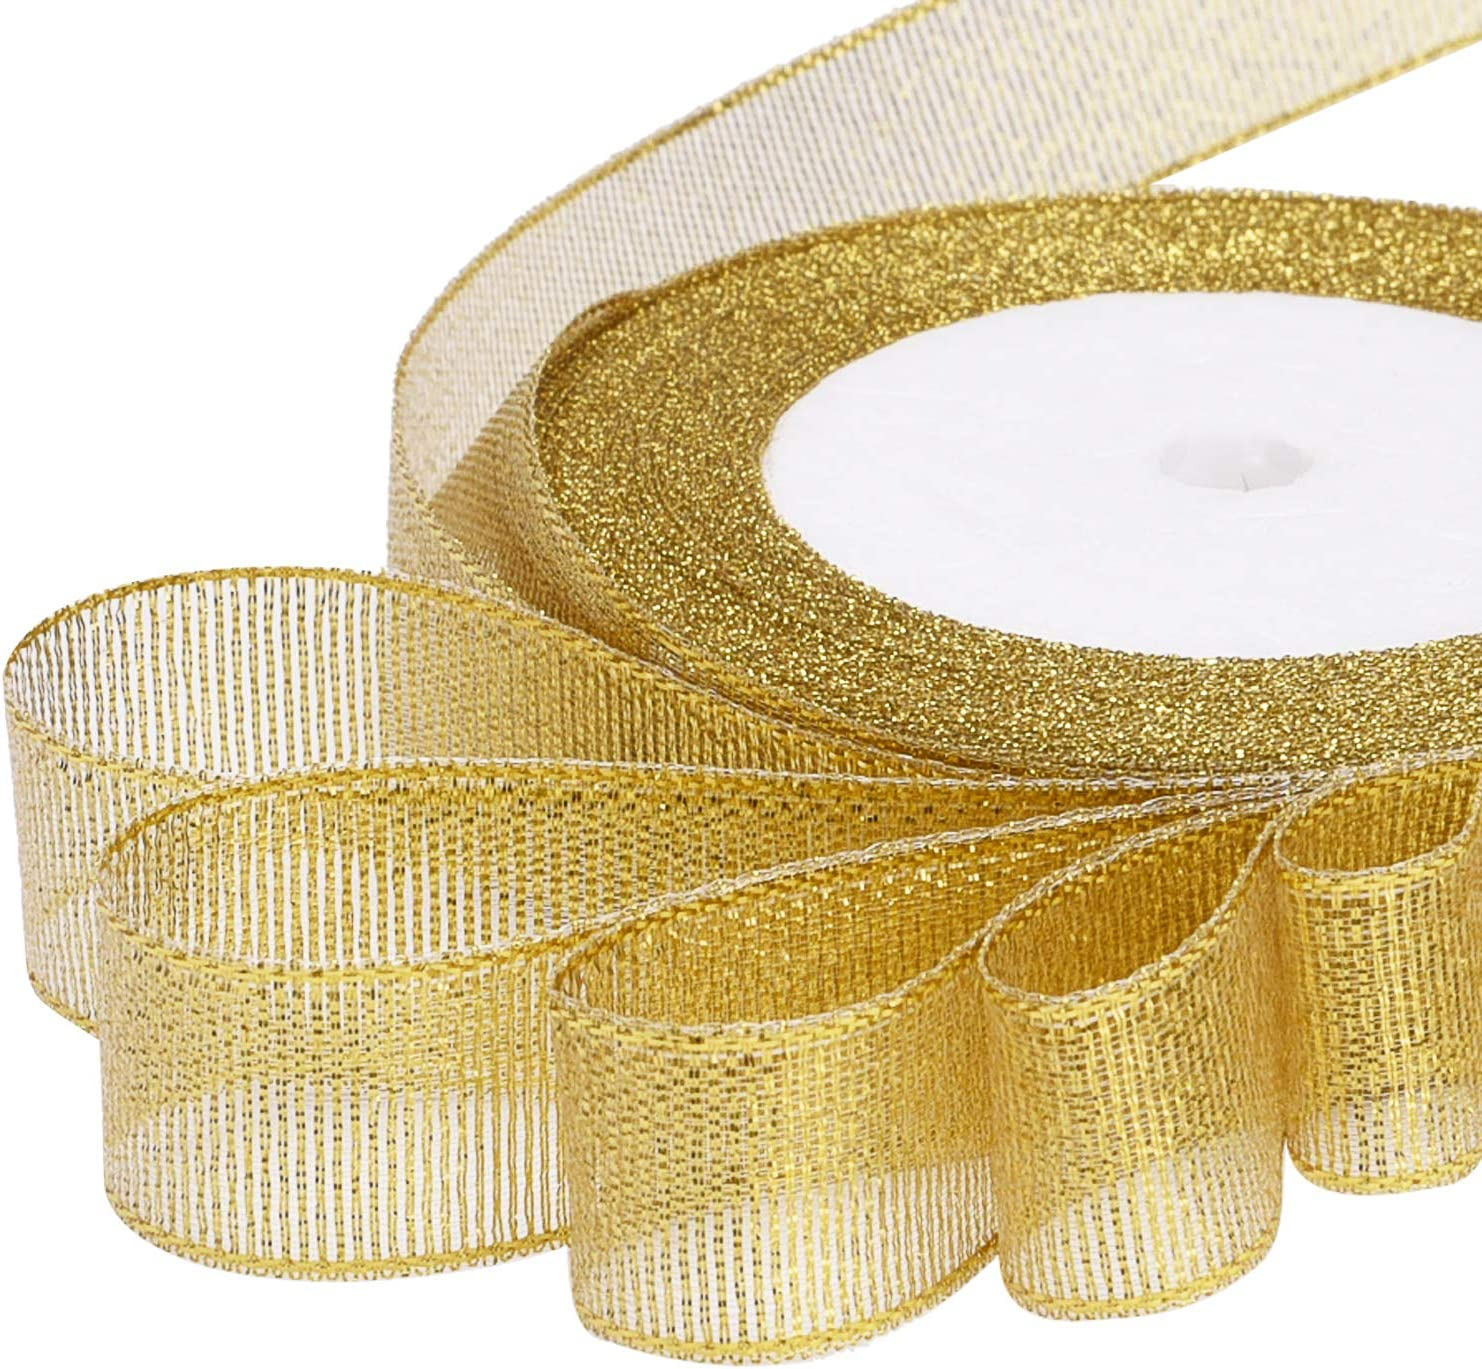 Livder 3 Rolls 75 Yard Metallic Glitter Ribbon for Gift Wrapping Birthday Holiday Graduation Party Decoration (Golden, Silvery, Silver-Black): Health & Personal Care